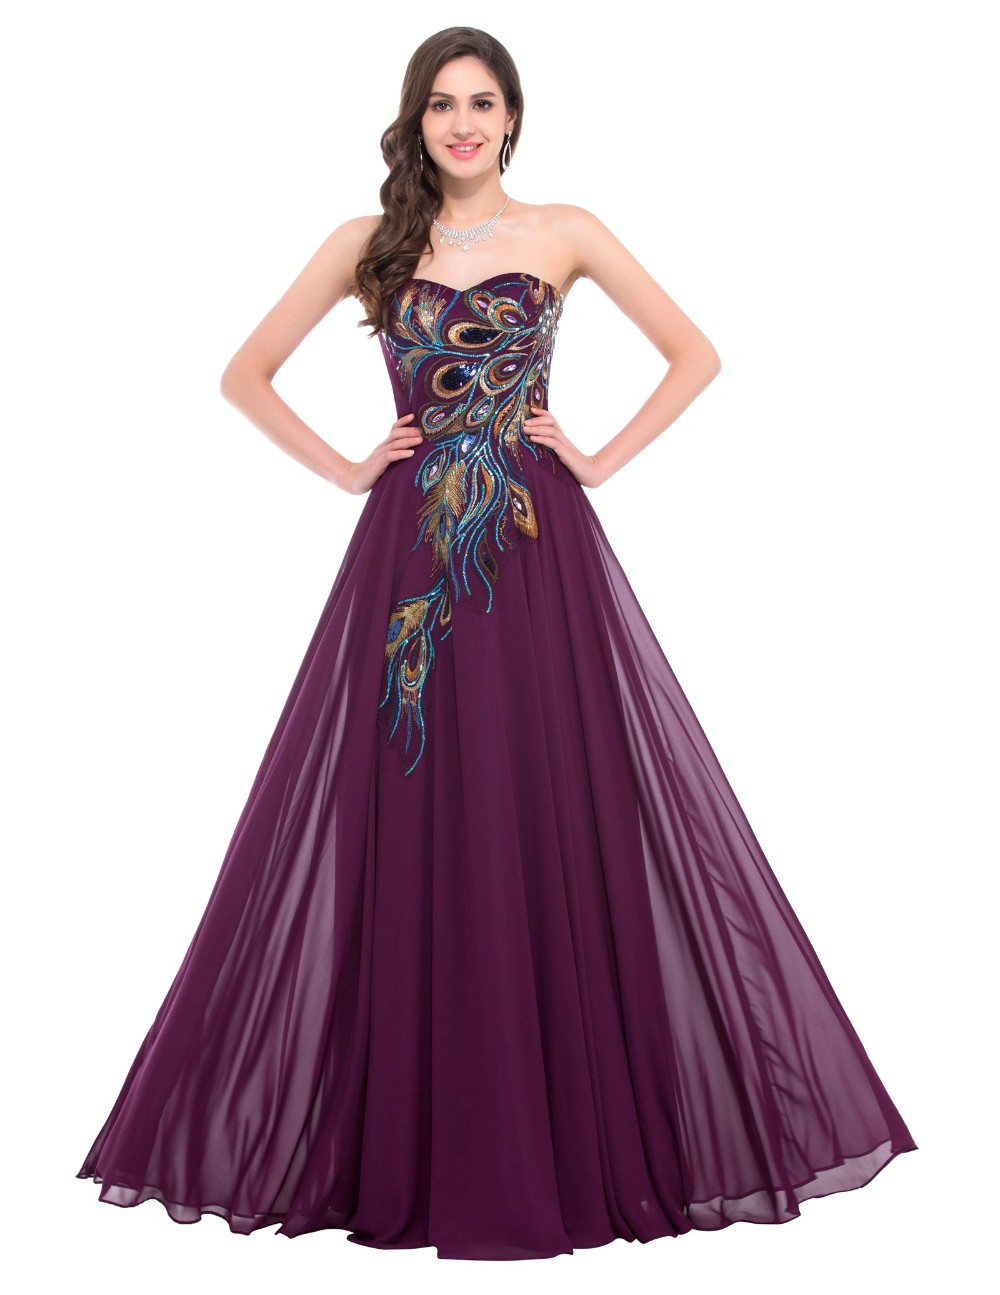 d76b63212f2bb Sweetheart Peacock Navy Blue Purple Black Bridesmaid Dresses Elegant Long  Grace Karin Appliques Chiffon Formal Gowns Party Dress-in Bridesmaid  Dresses ...